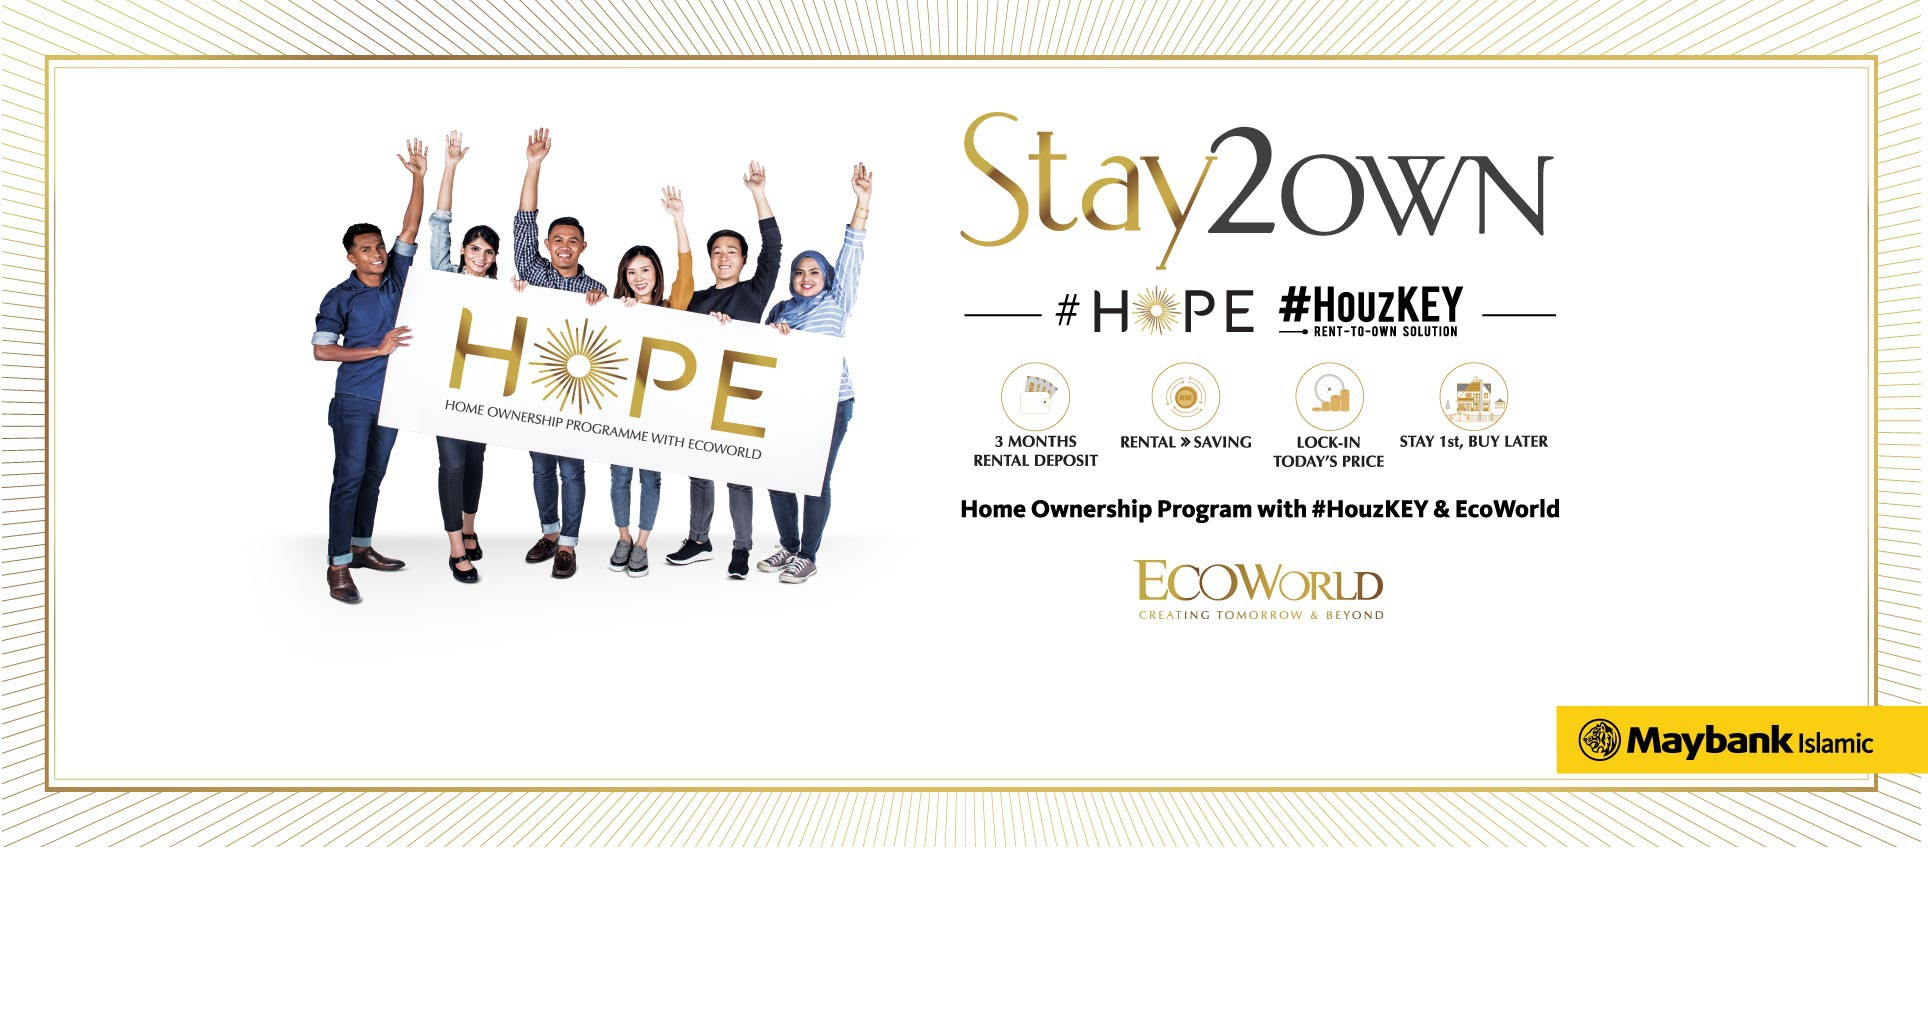 HOPE - A collaboration between EcoWorld & Maybank #HouzKEY